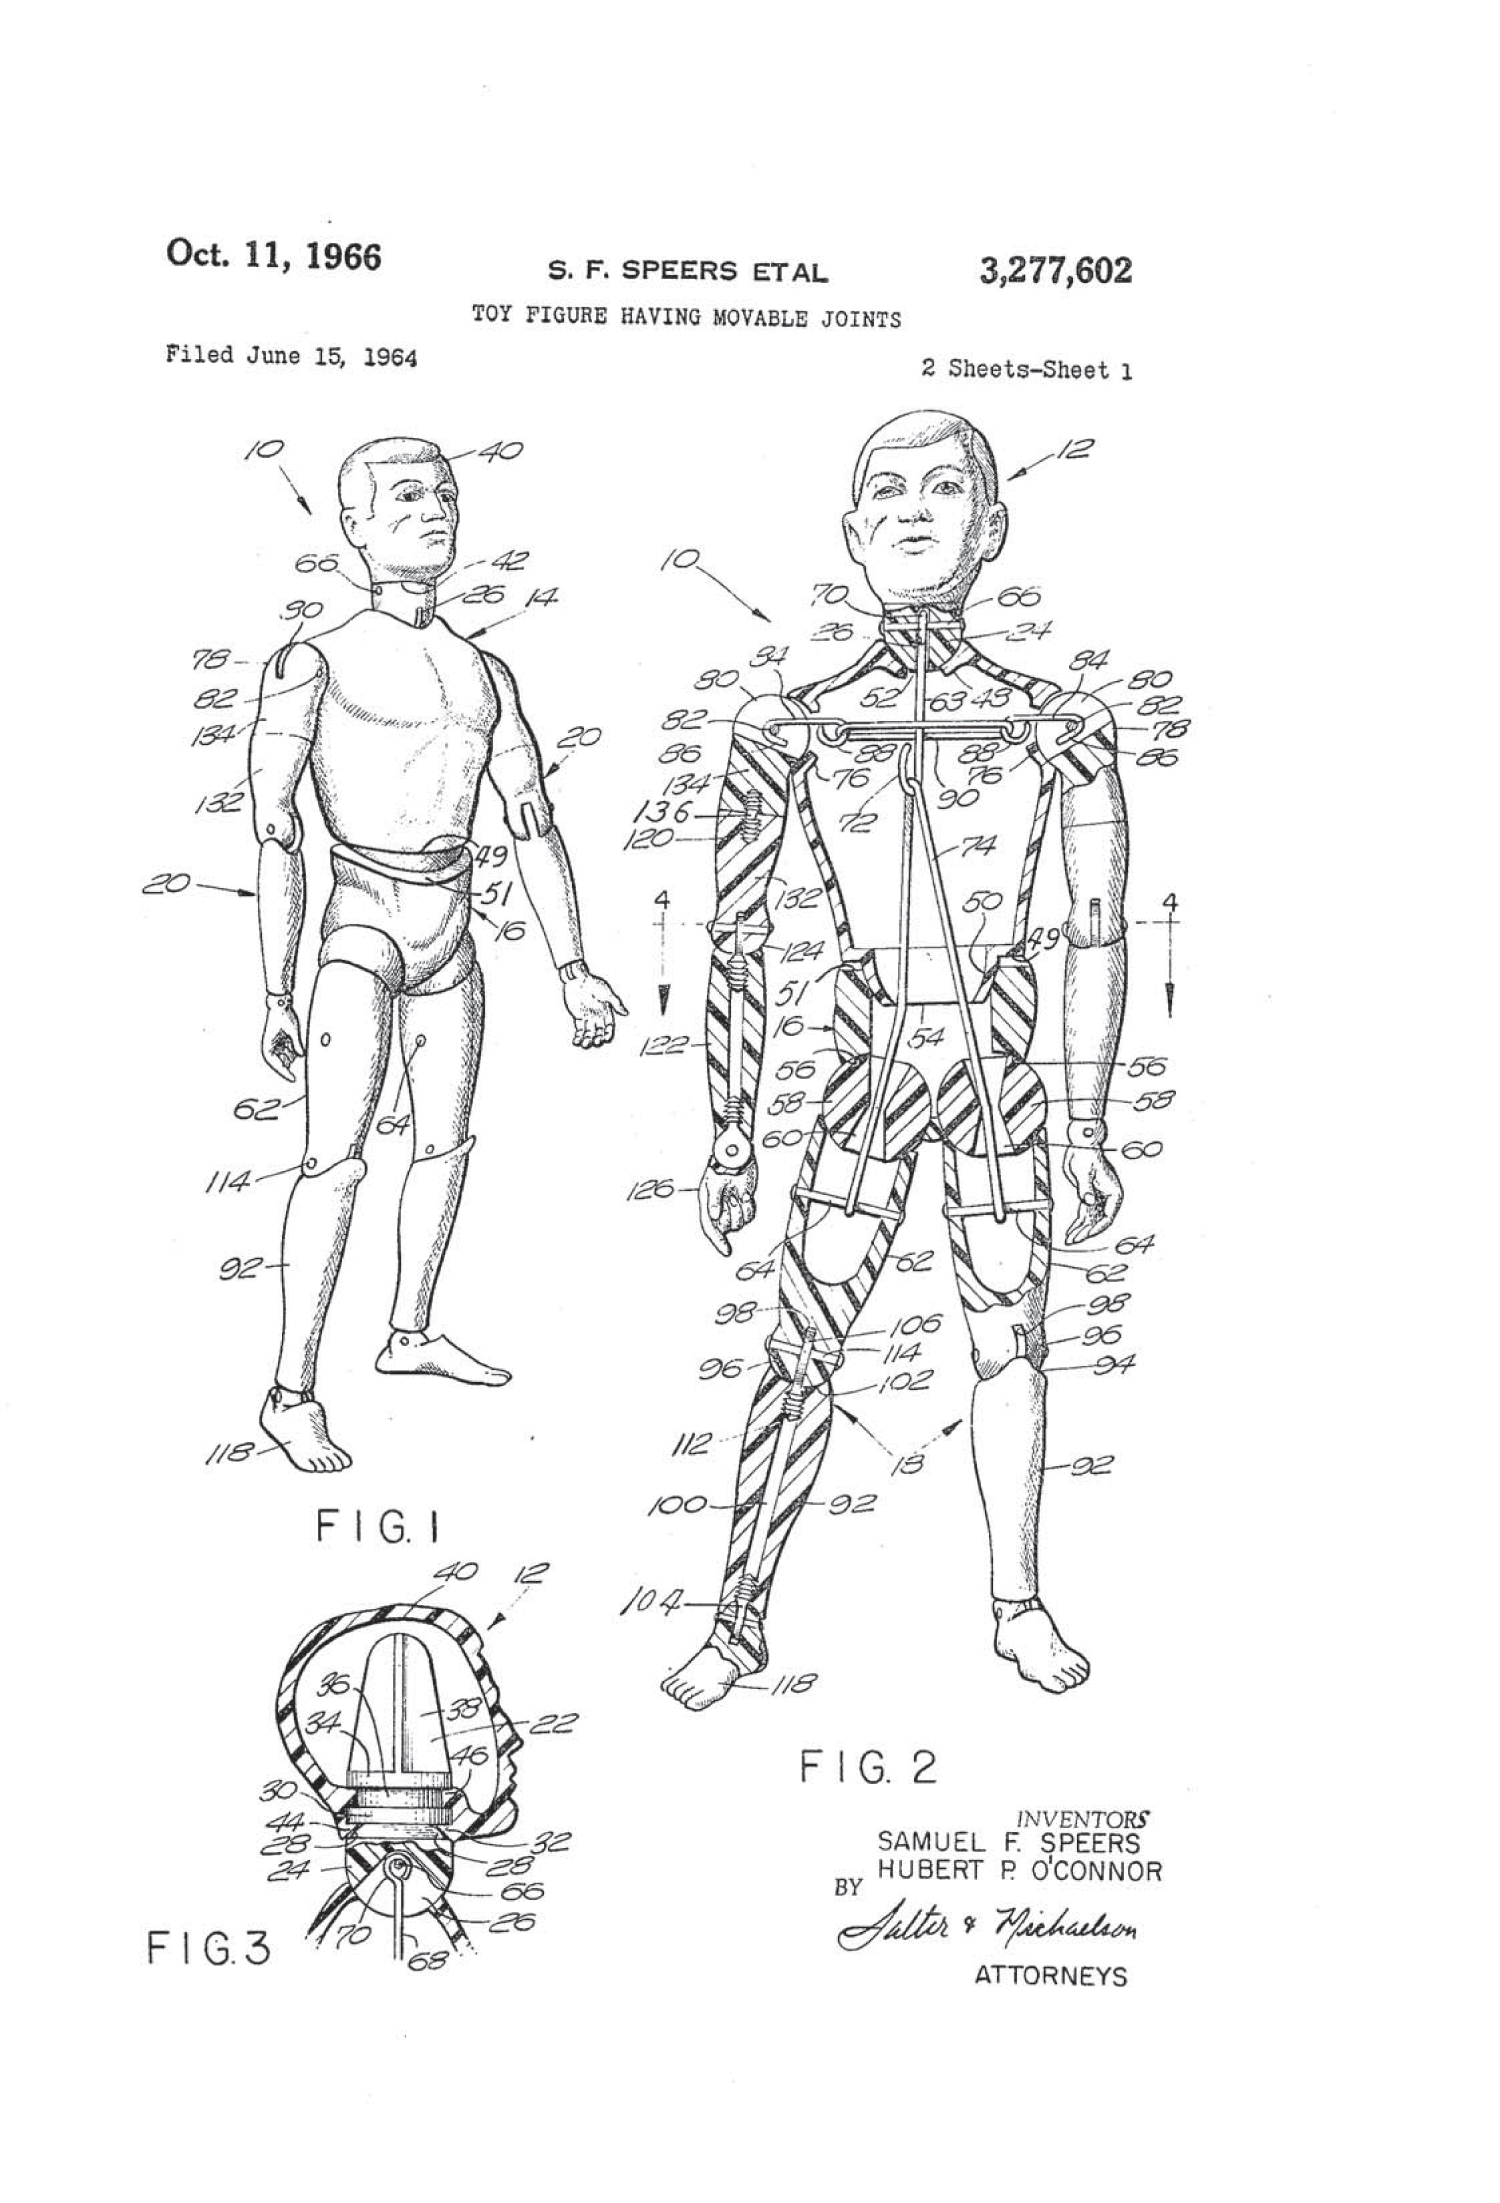 Drawing from the patent for G.I. Joe